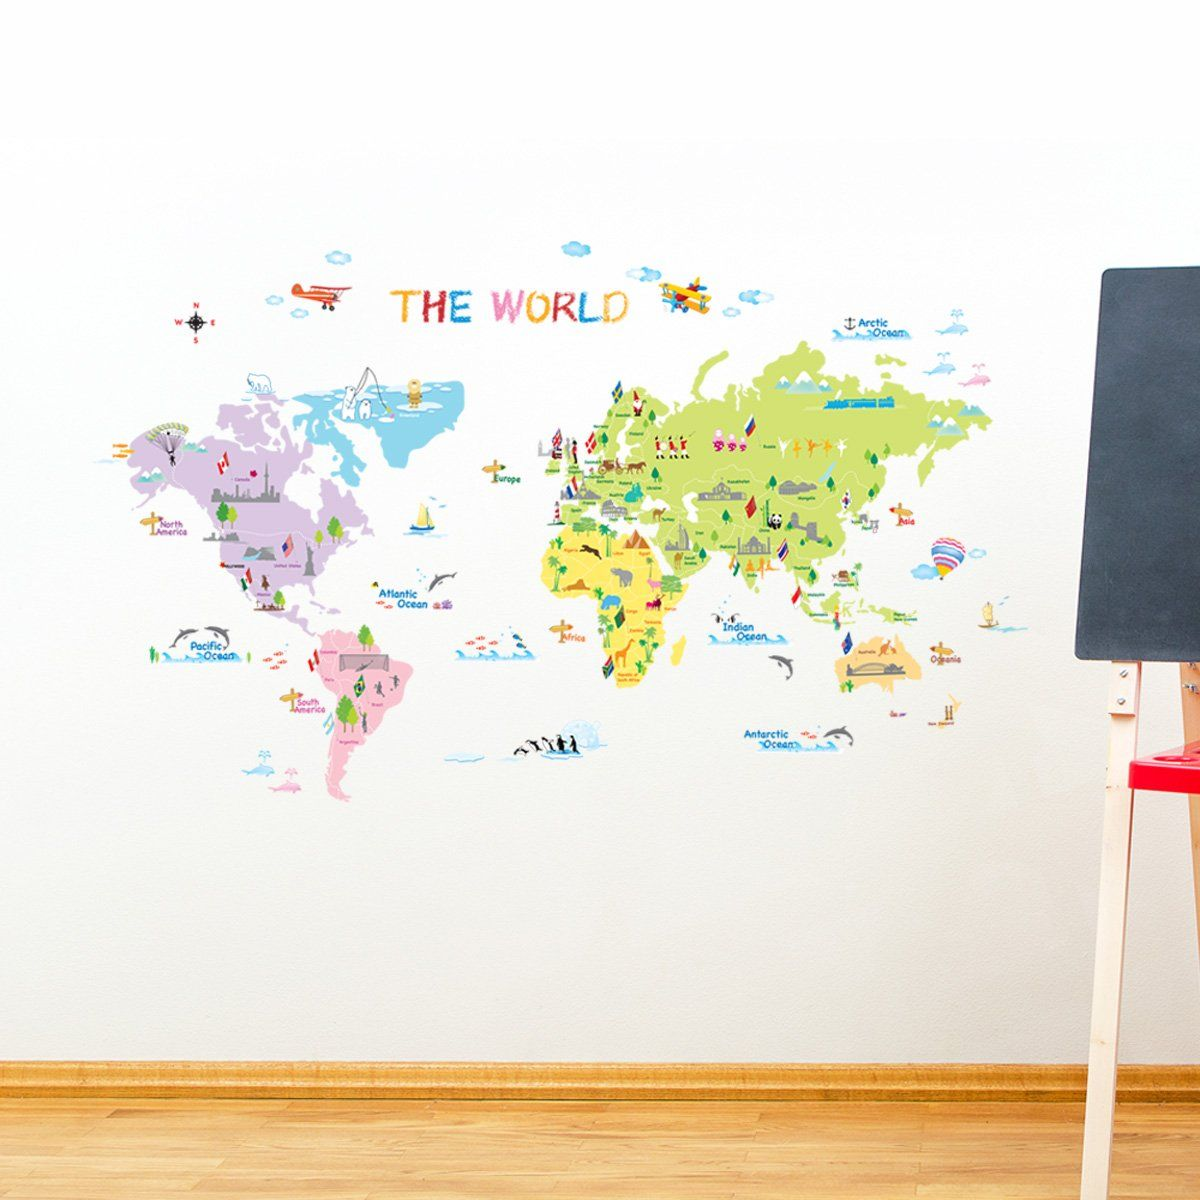 Dw 1203 multicoloured world map wall stickerskids wall decalswall dw 1203 multicoloured world map wall stickerskids wall decalswall transfers gumiabroncs Images